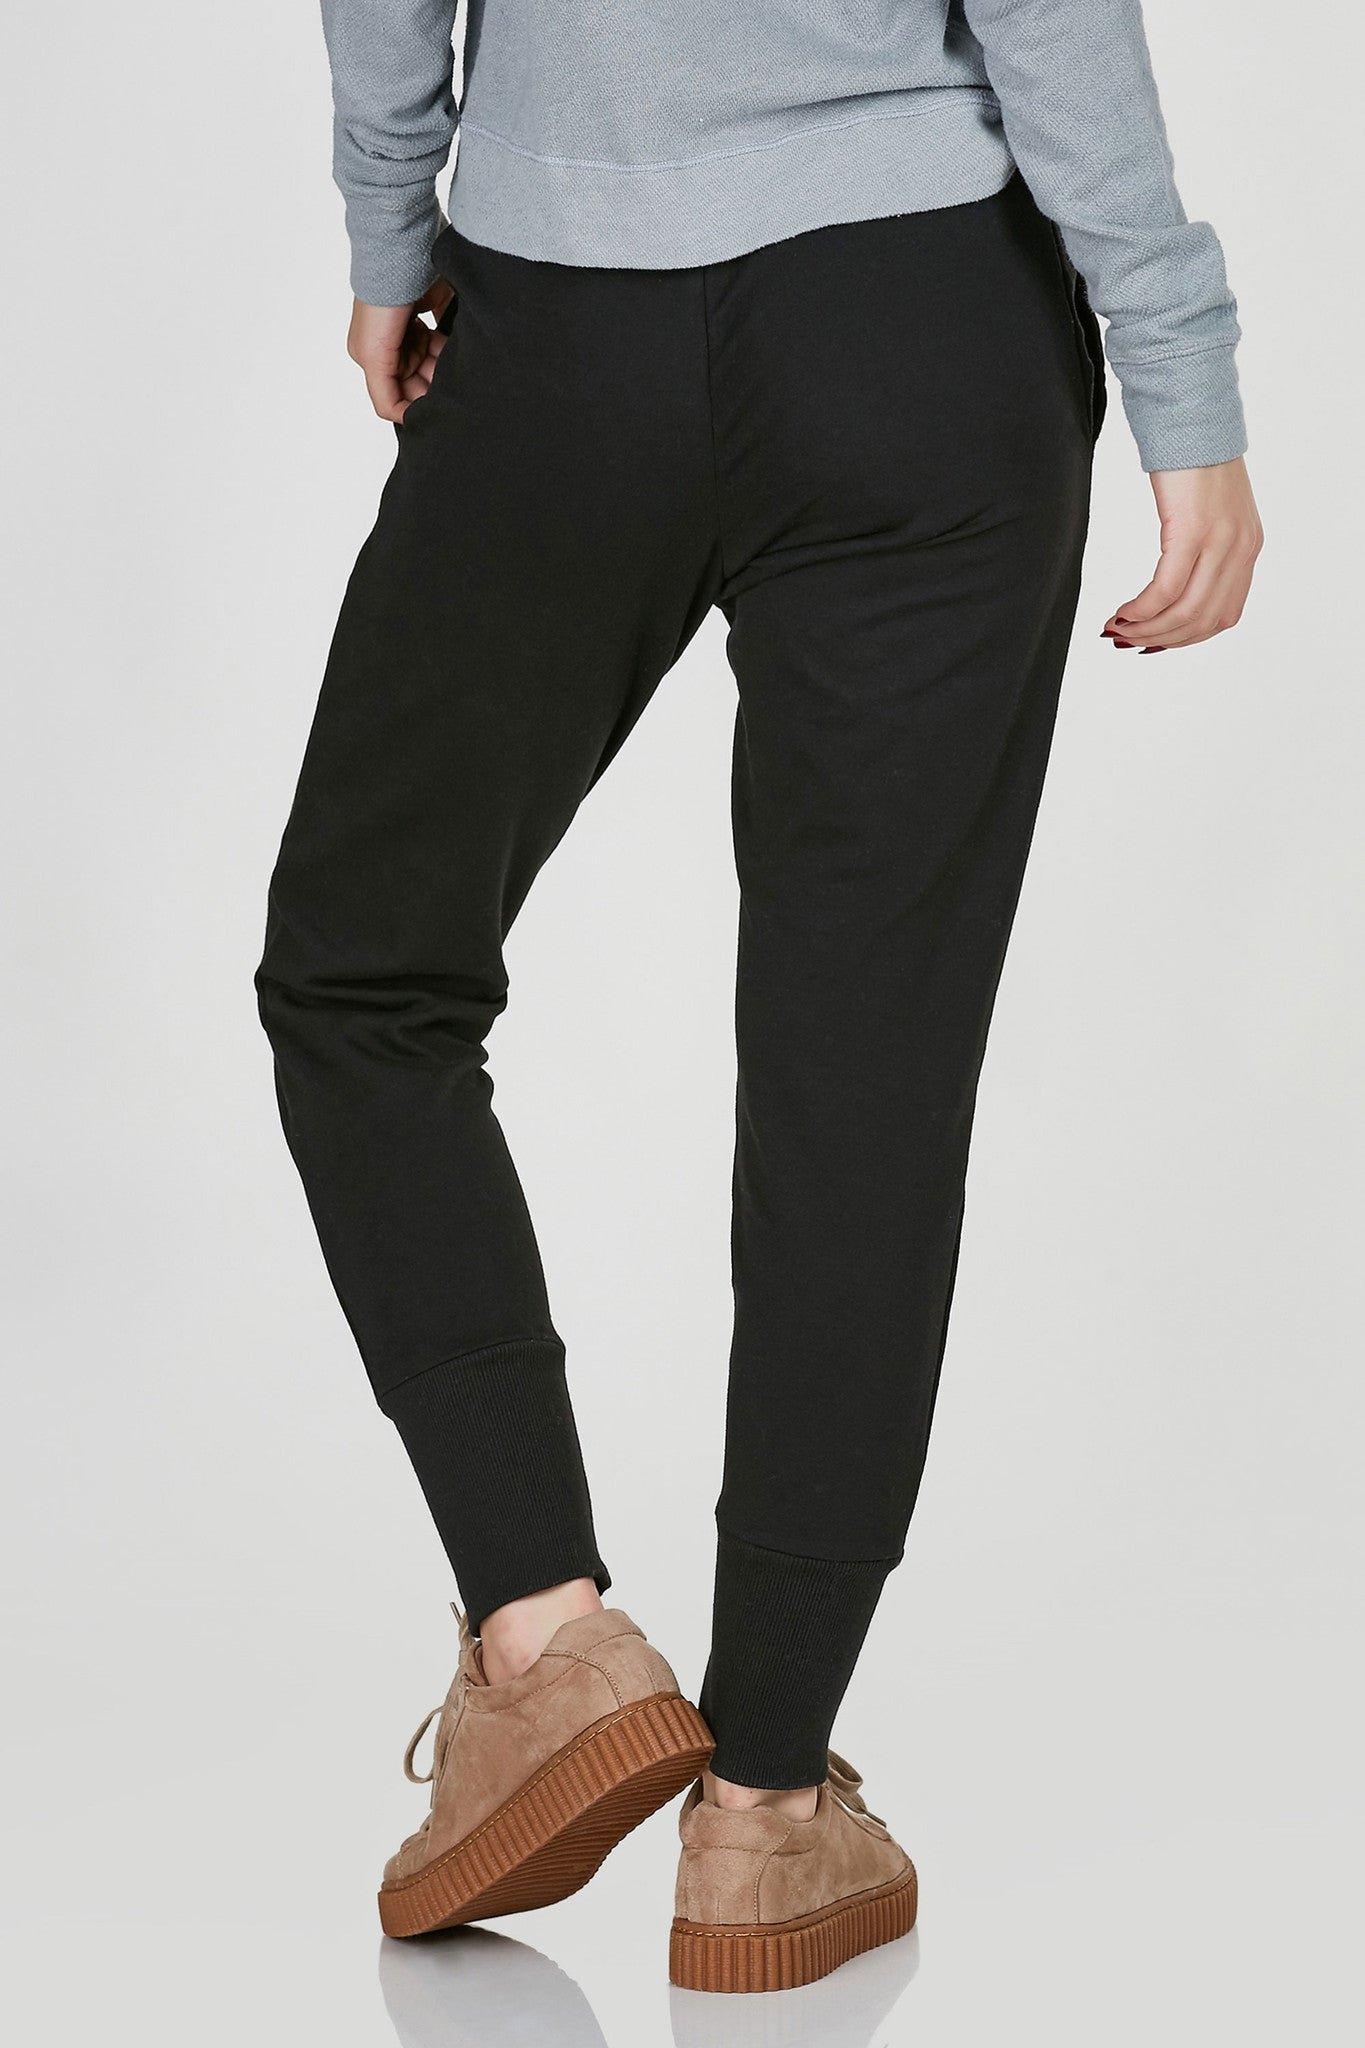 Mid rise jogger style sweatpants with trendy lace up closure at waist. Ribbed hem with relaxed fit.